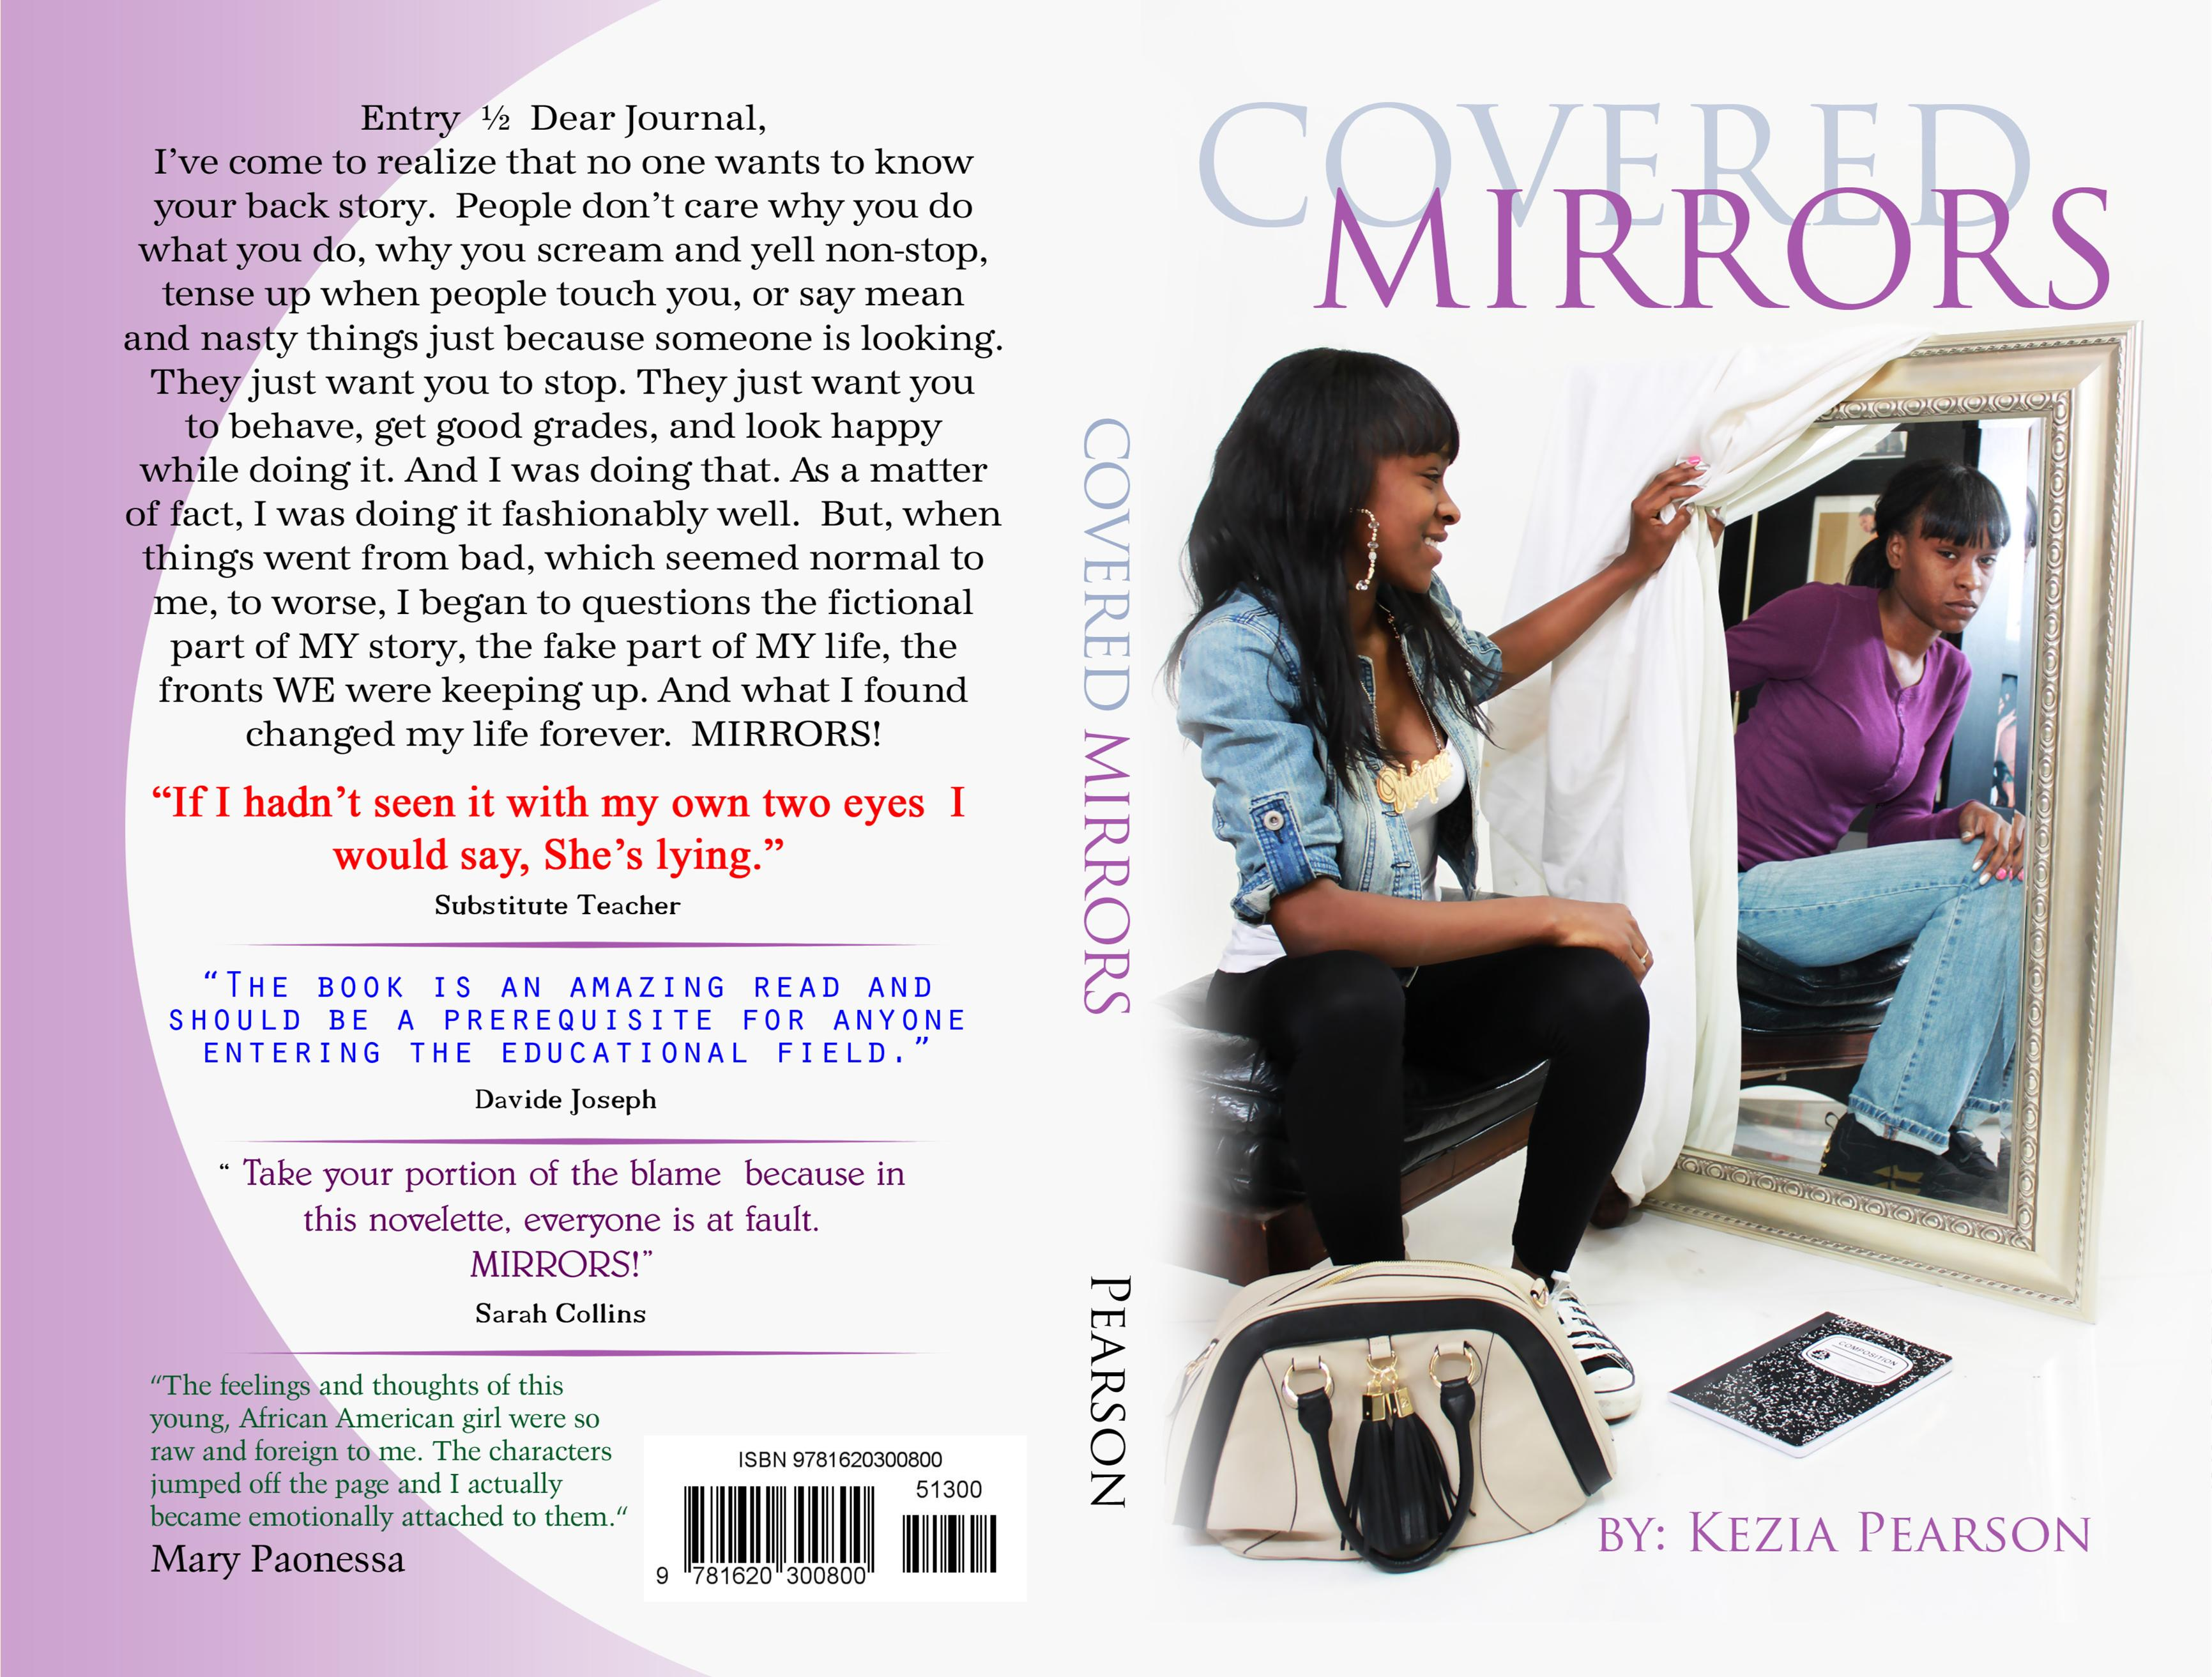 Covered Mirrors cover image